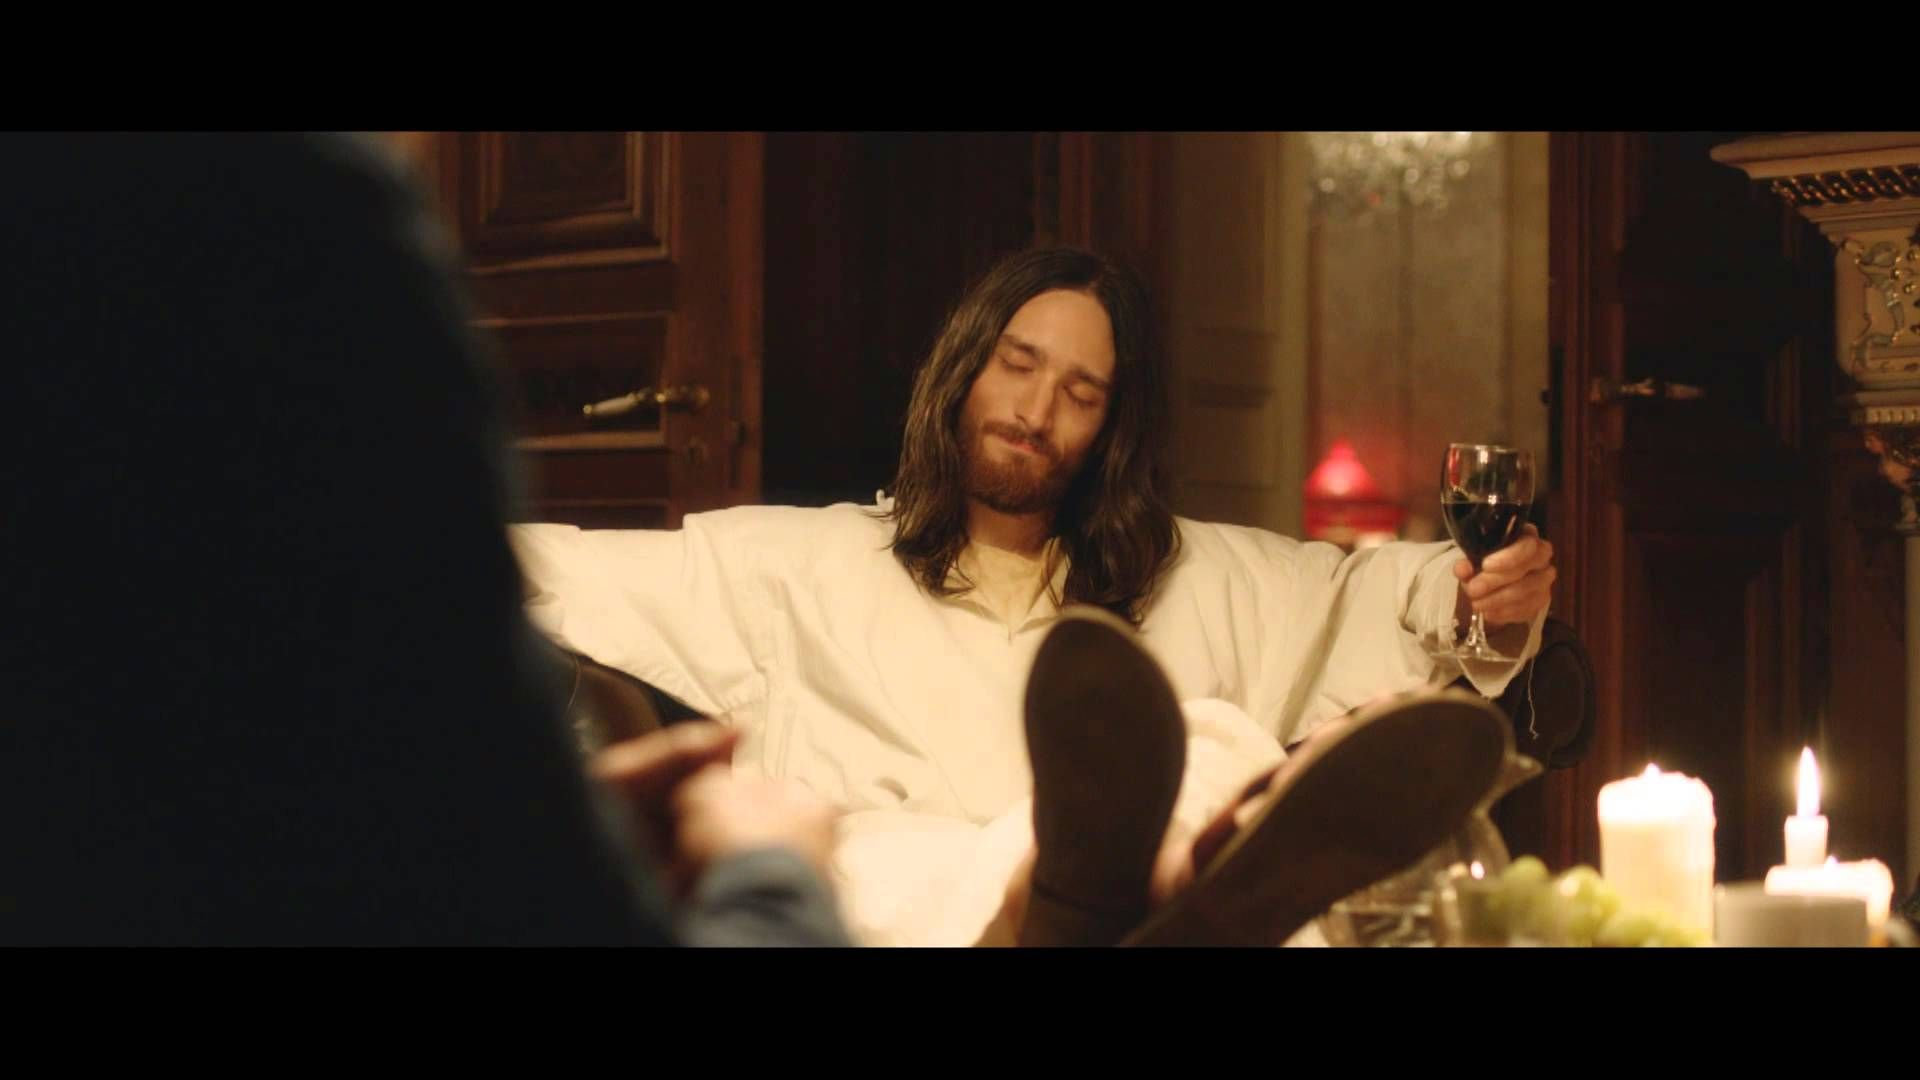 The Greatest Story - The Good Guys Christmas - Eng - Unicef Sweden - Jesus, Gandhi and Mother Teresa stump for UNICEF